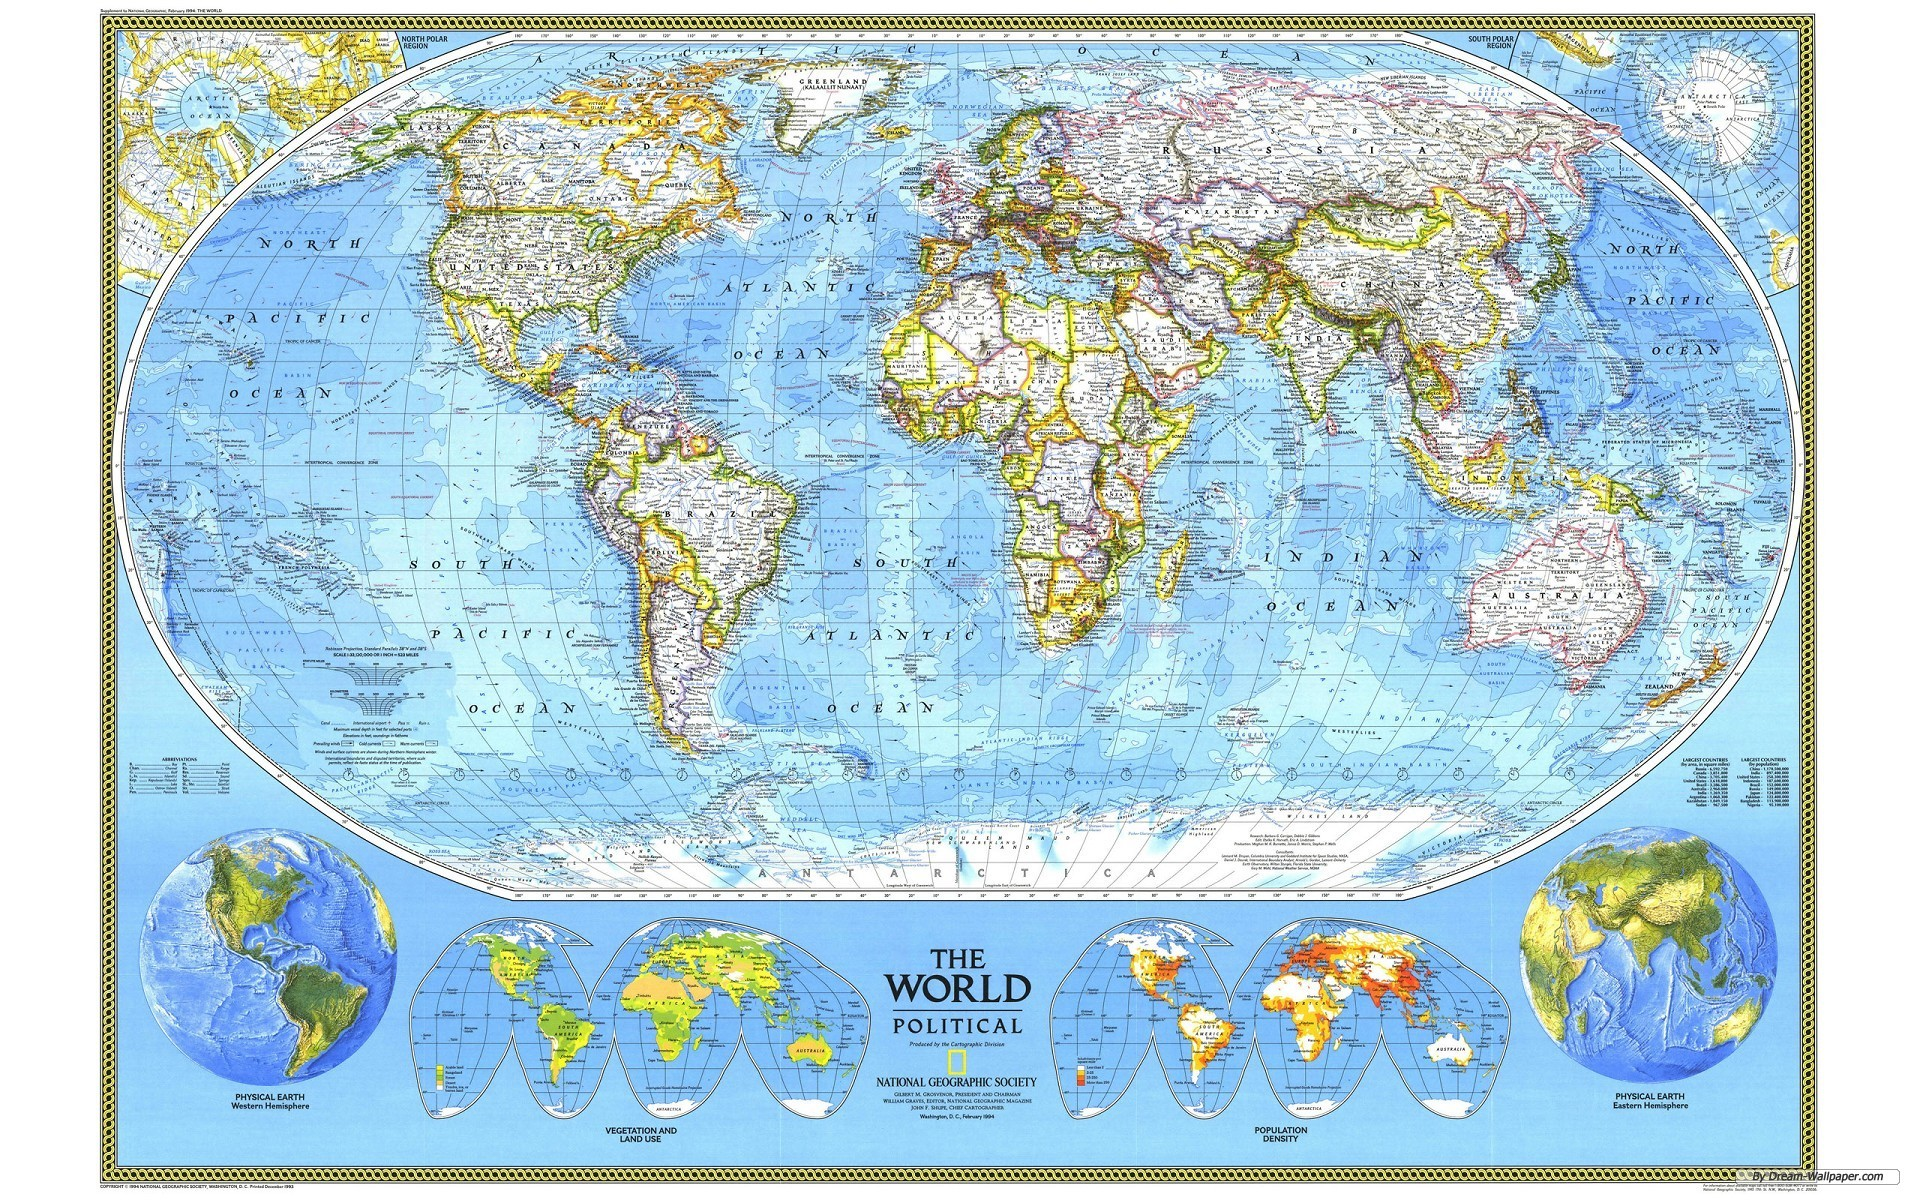 World map background download free stunning high resolution 1920x1200 wallpaper desktop wallpapers world travel 1920x1200 download hd gumiabroncs Image collections